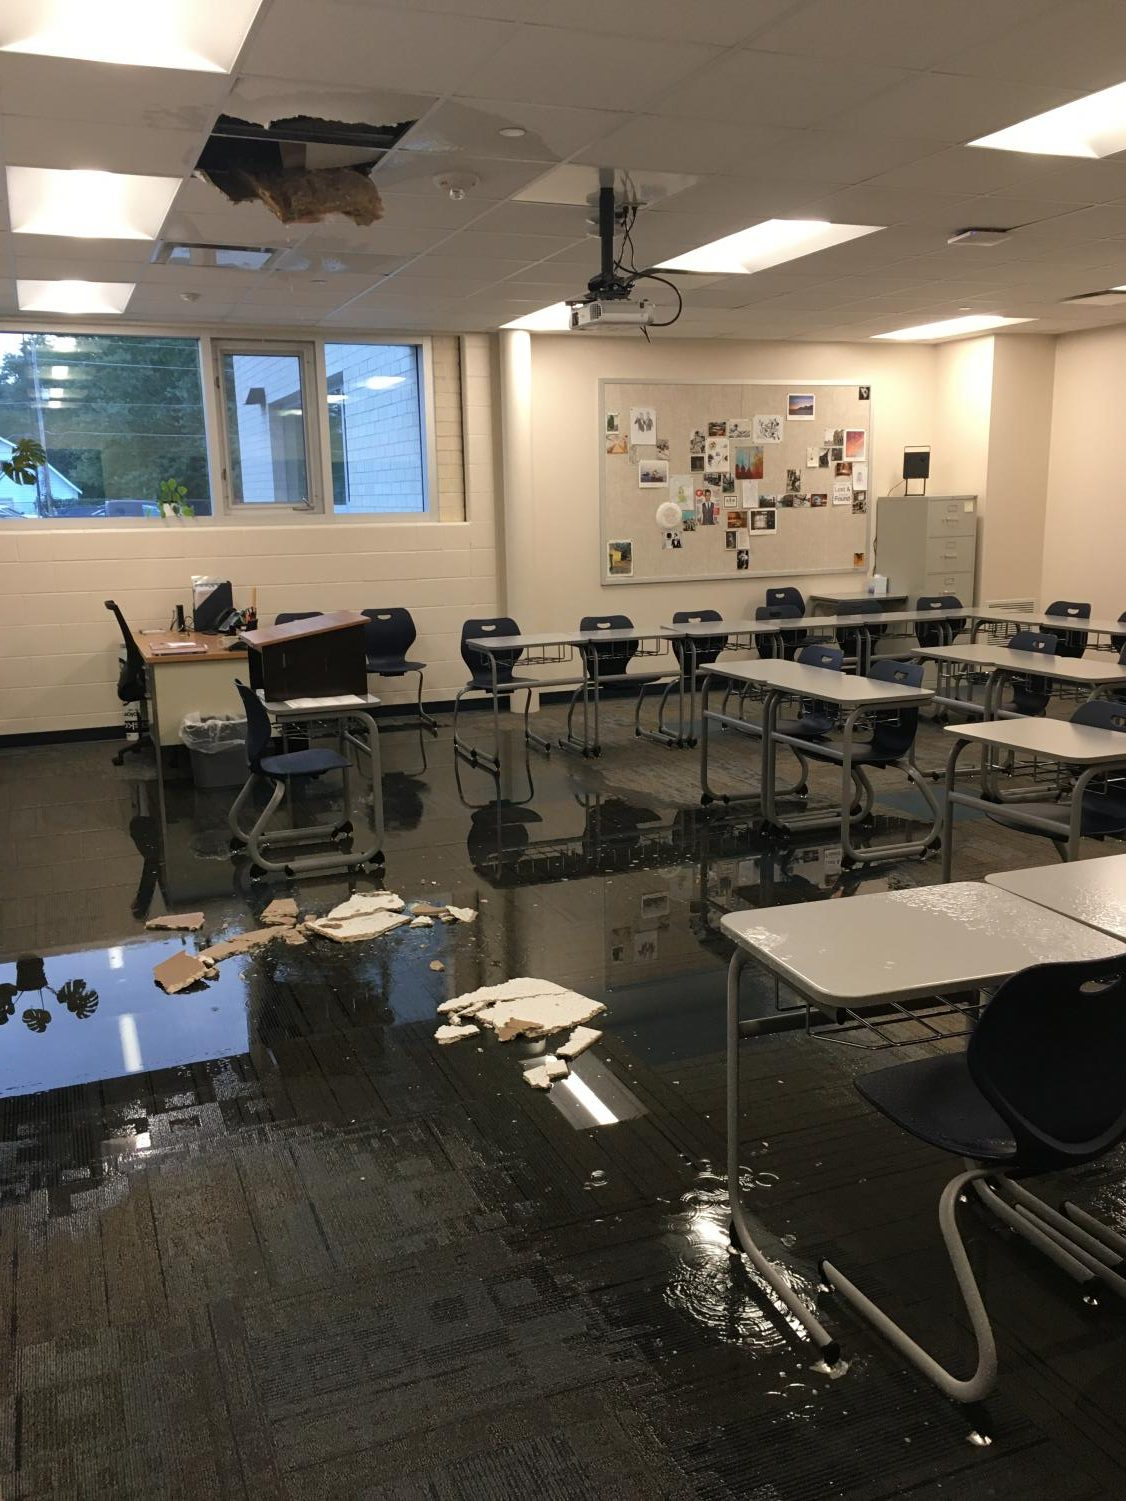 The damage done to Terronez's classroom on Tuesday morning.